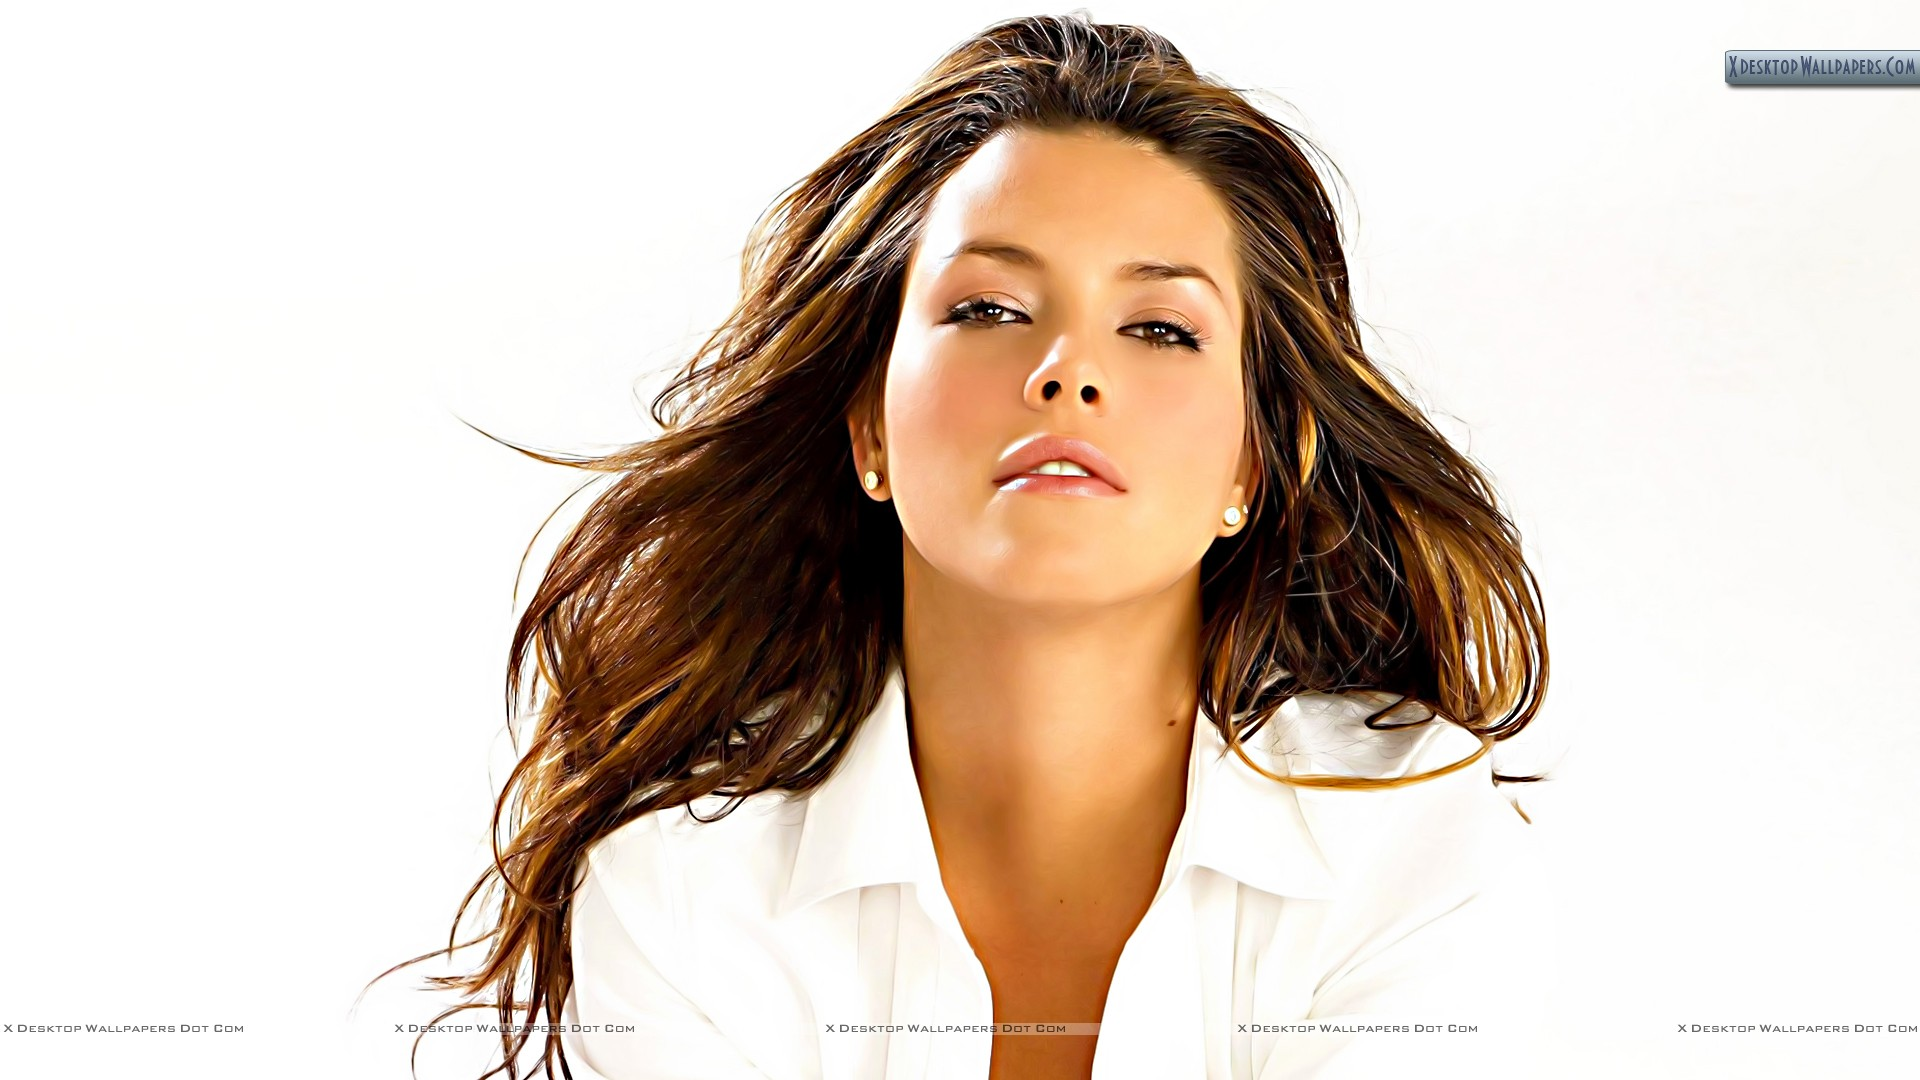 alicia machado, erotic, face, front, photo, sexy, wallpapers, wallpaper